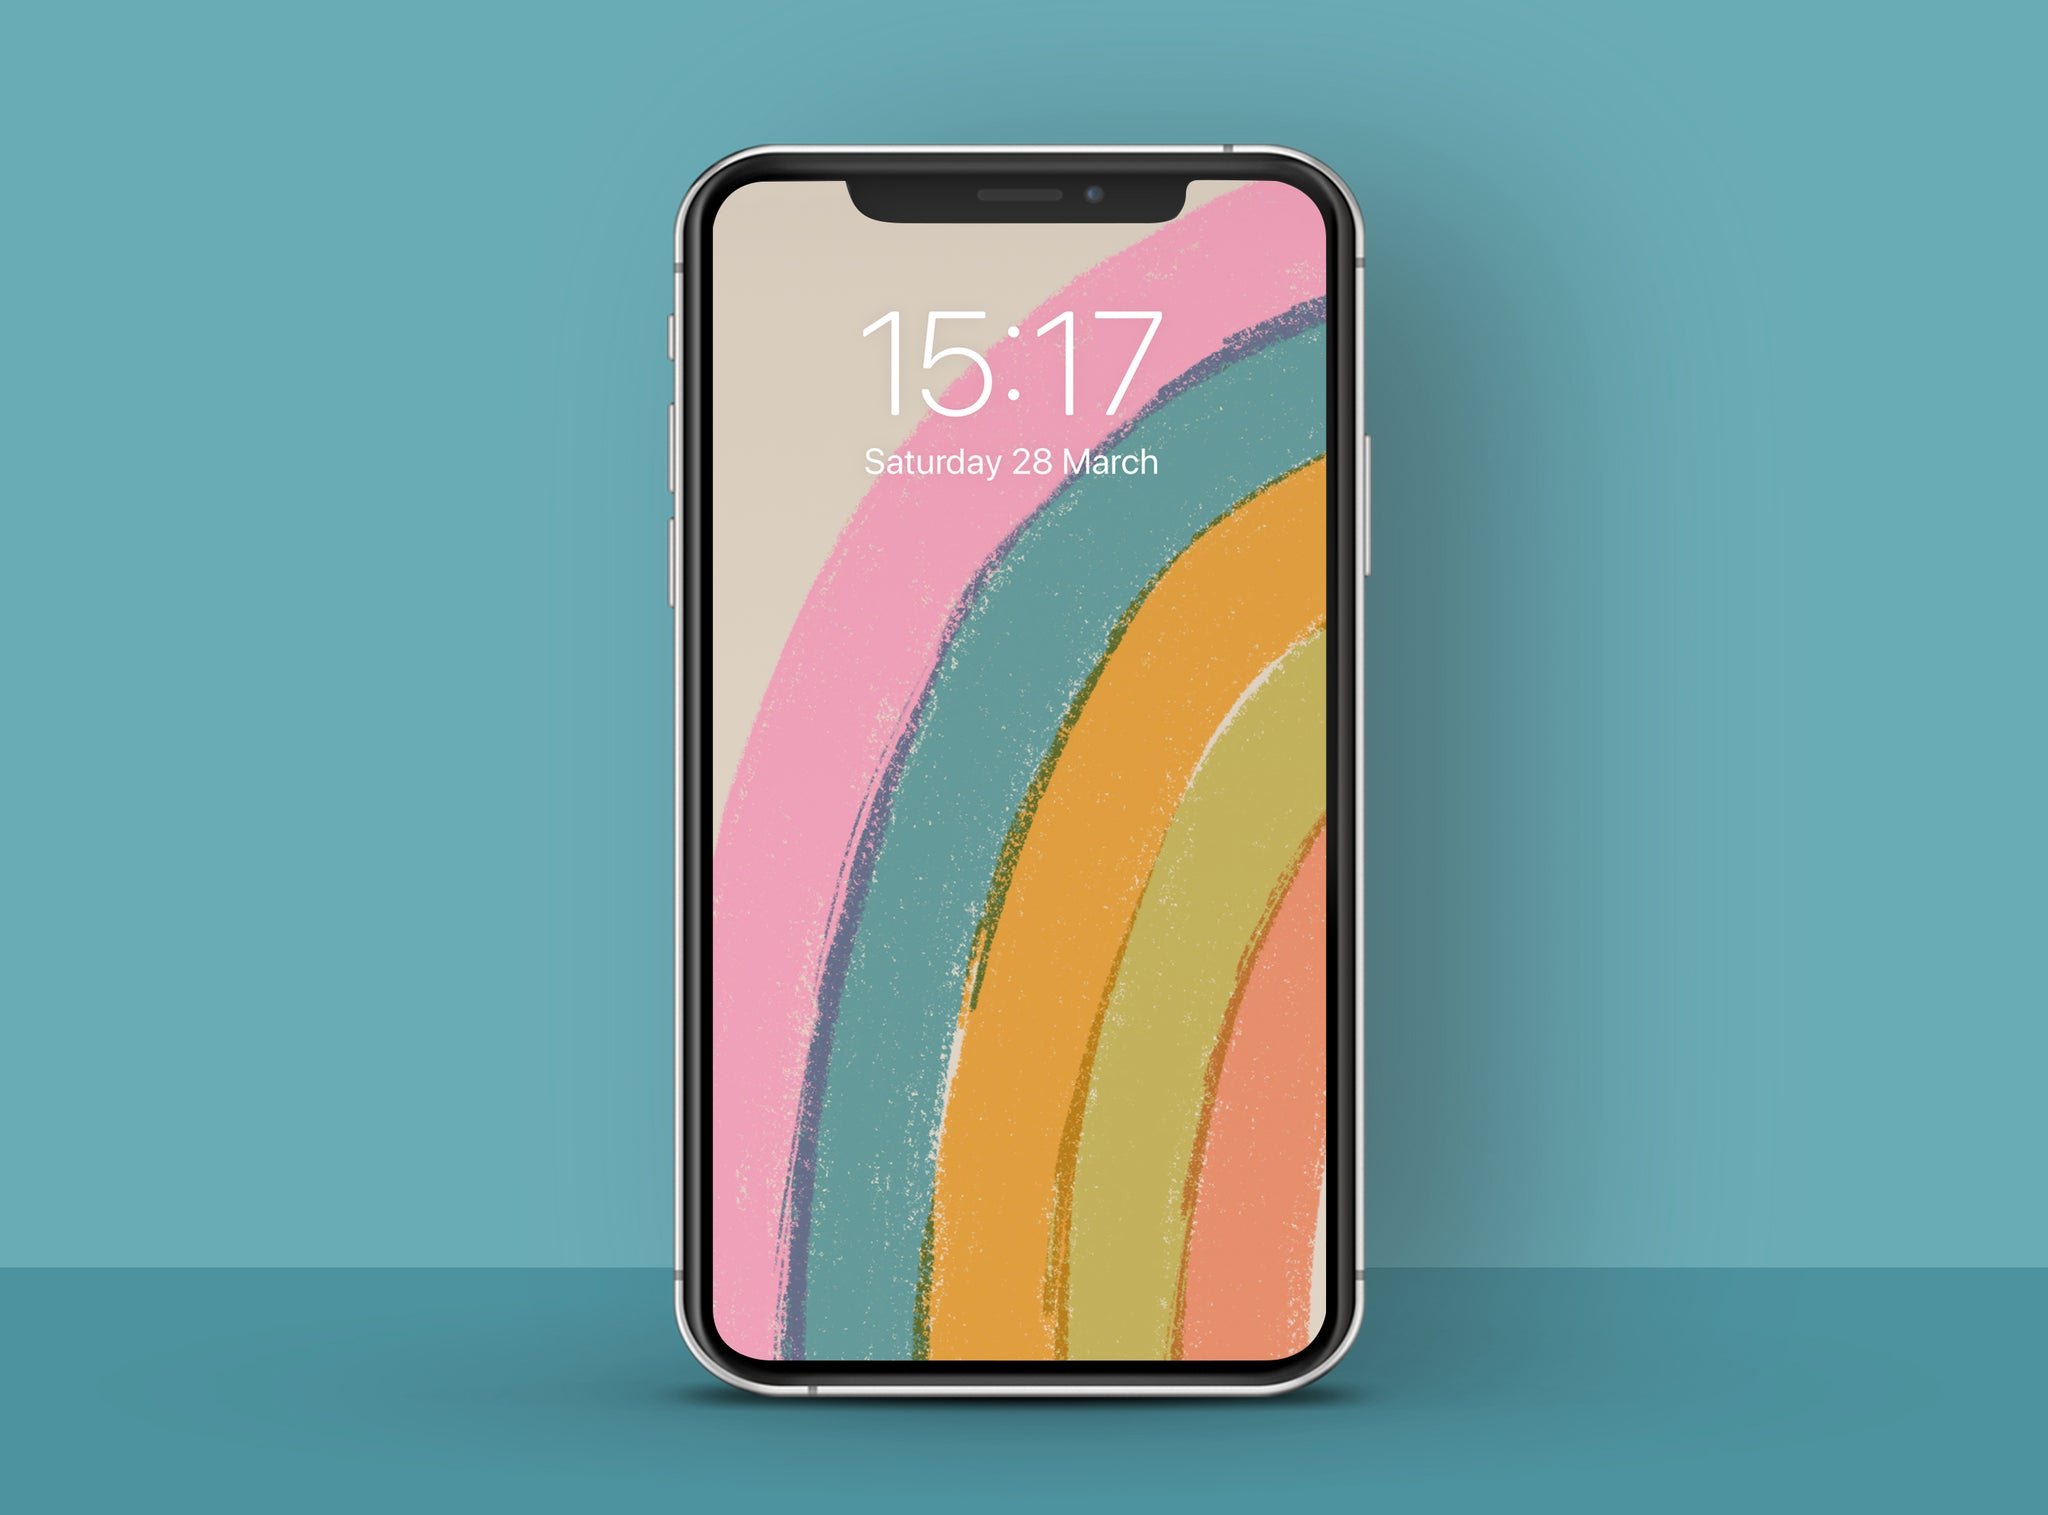 colourful illustrated half rainbow phone wallpaper